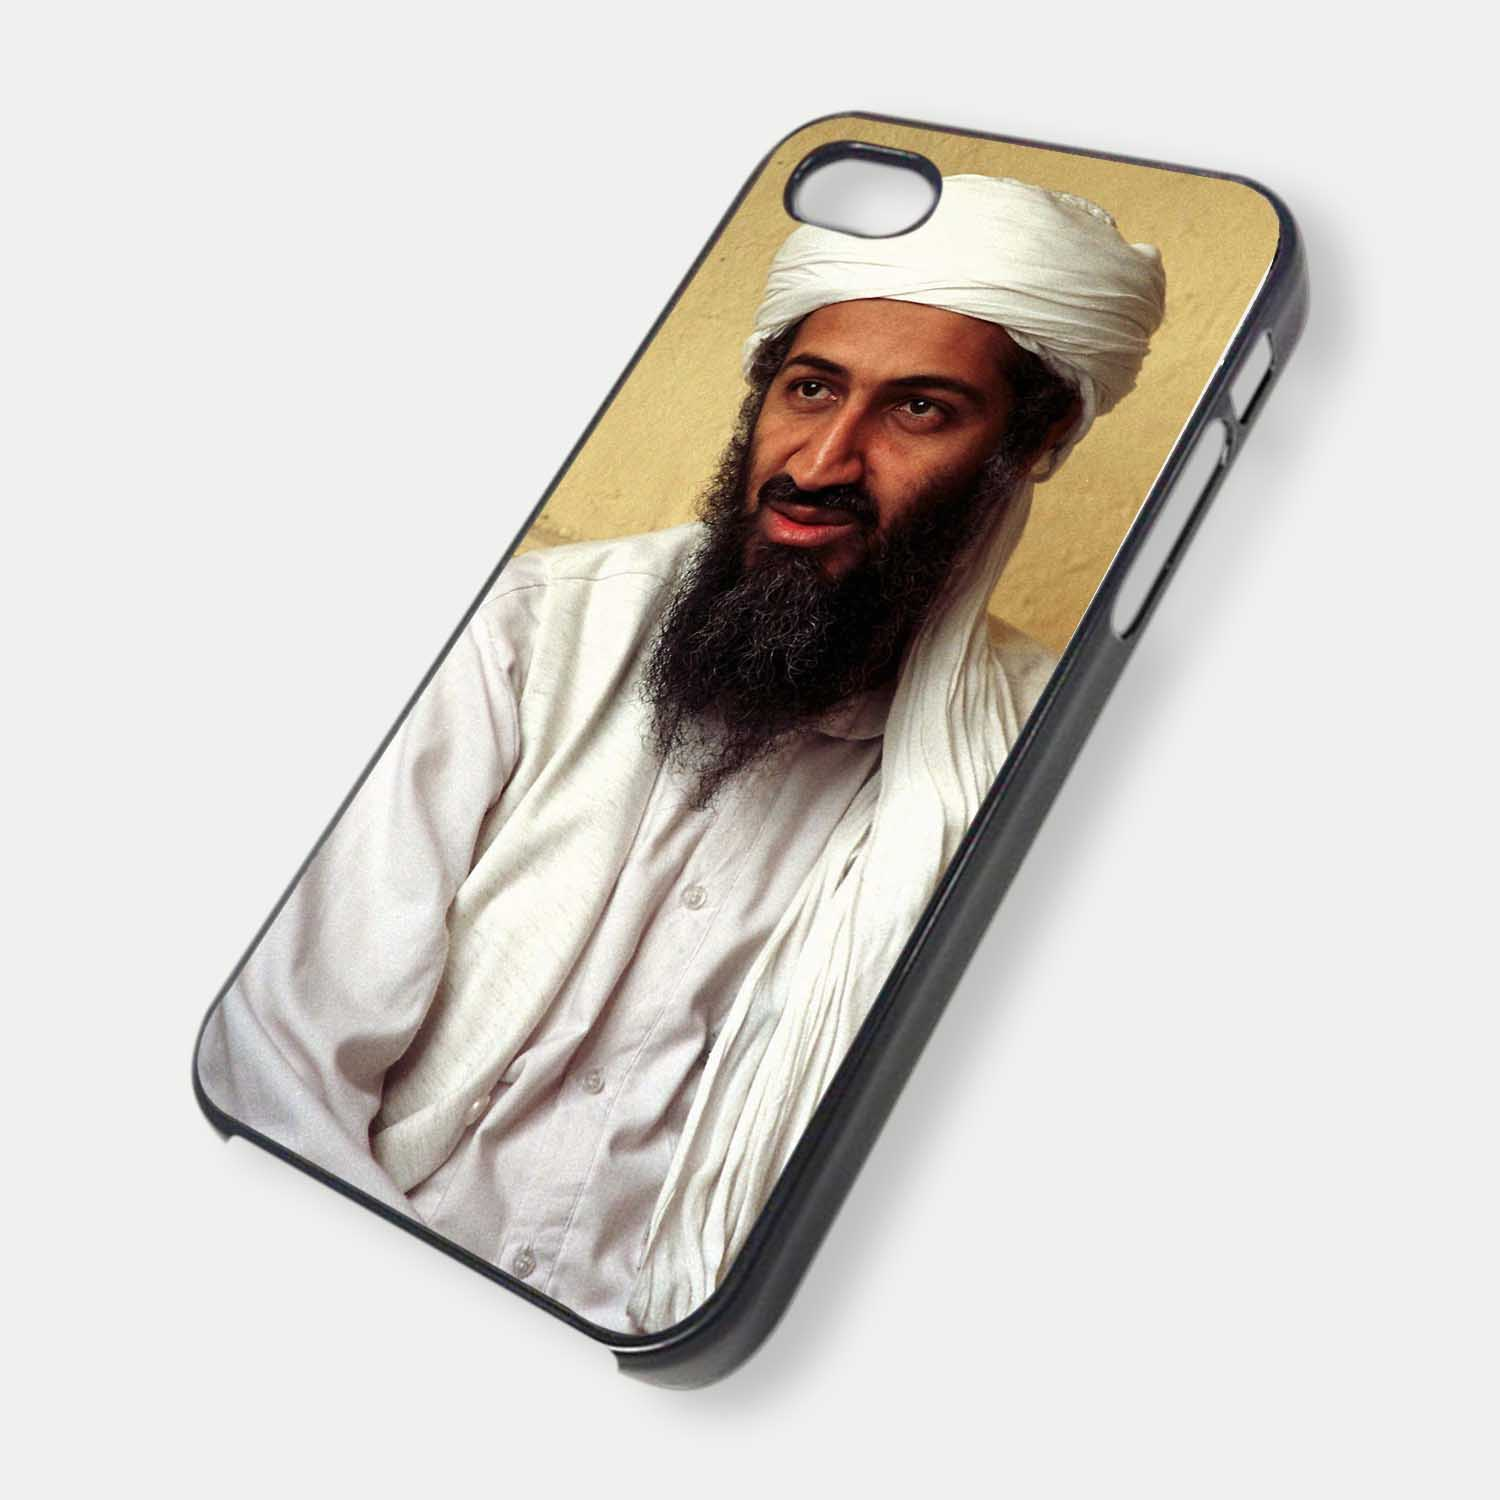 osama bin laden special design iphone 4 case cover on luulla. Black Bedroom Furniture Sets. Home Design Ideas